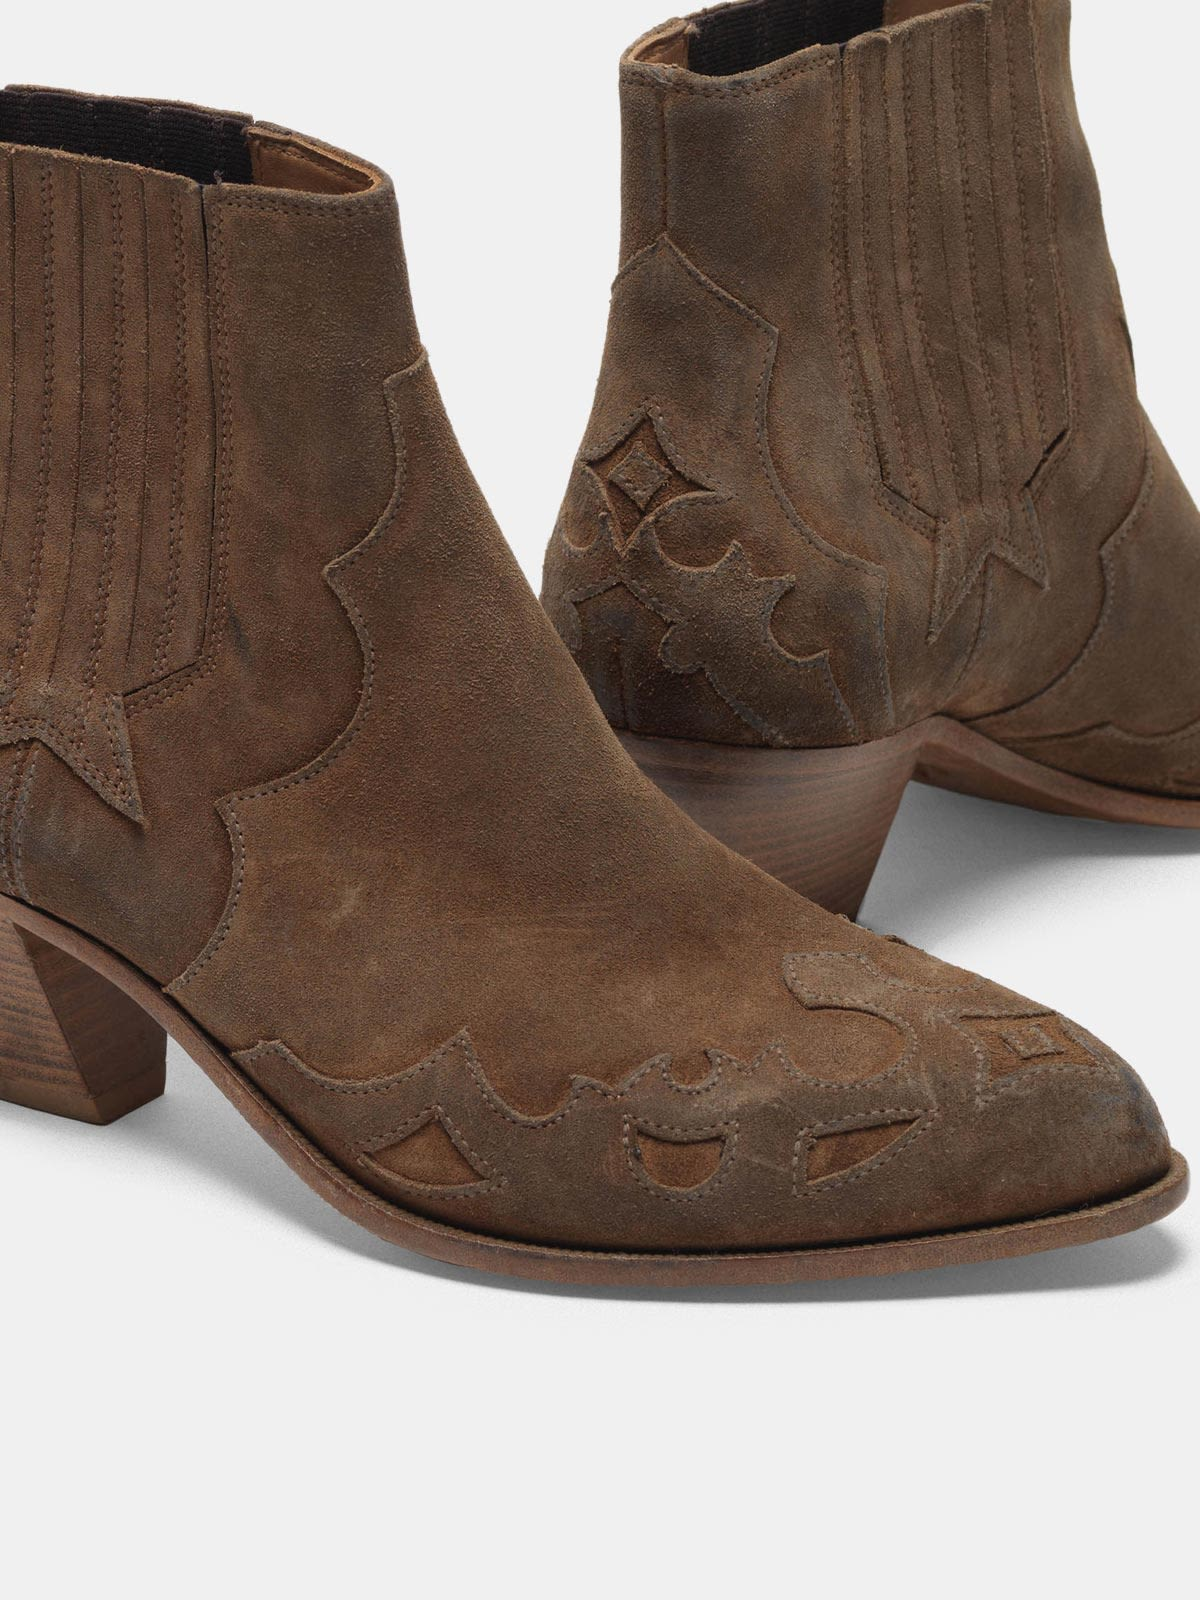 Golden Goose - Sunset Flowers ankle boots in suede with cowboy-style decoration in